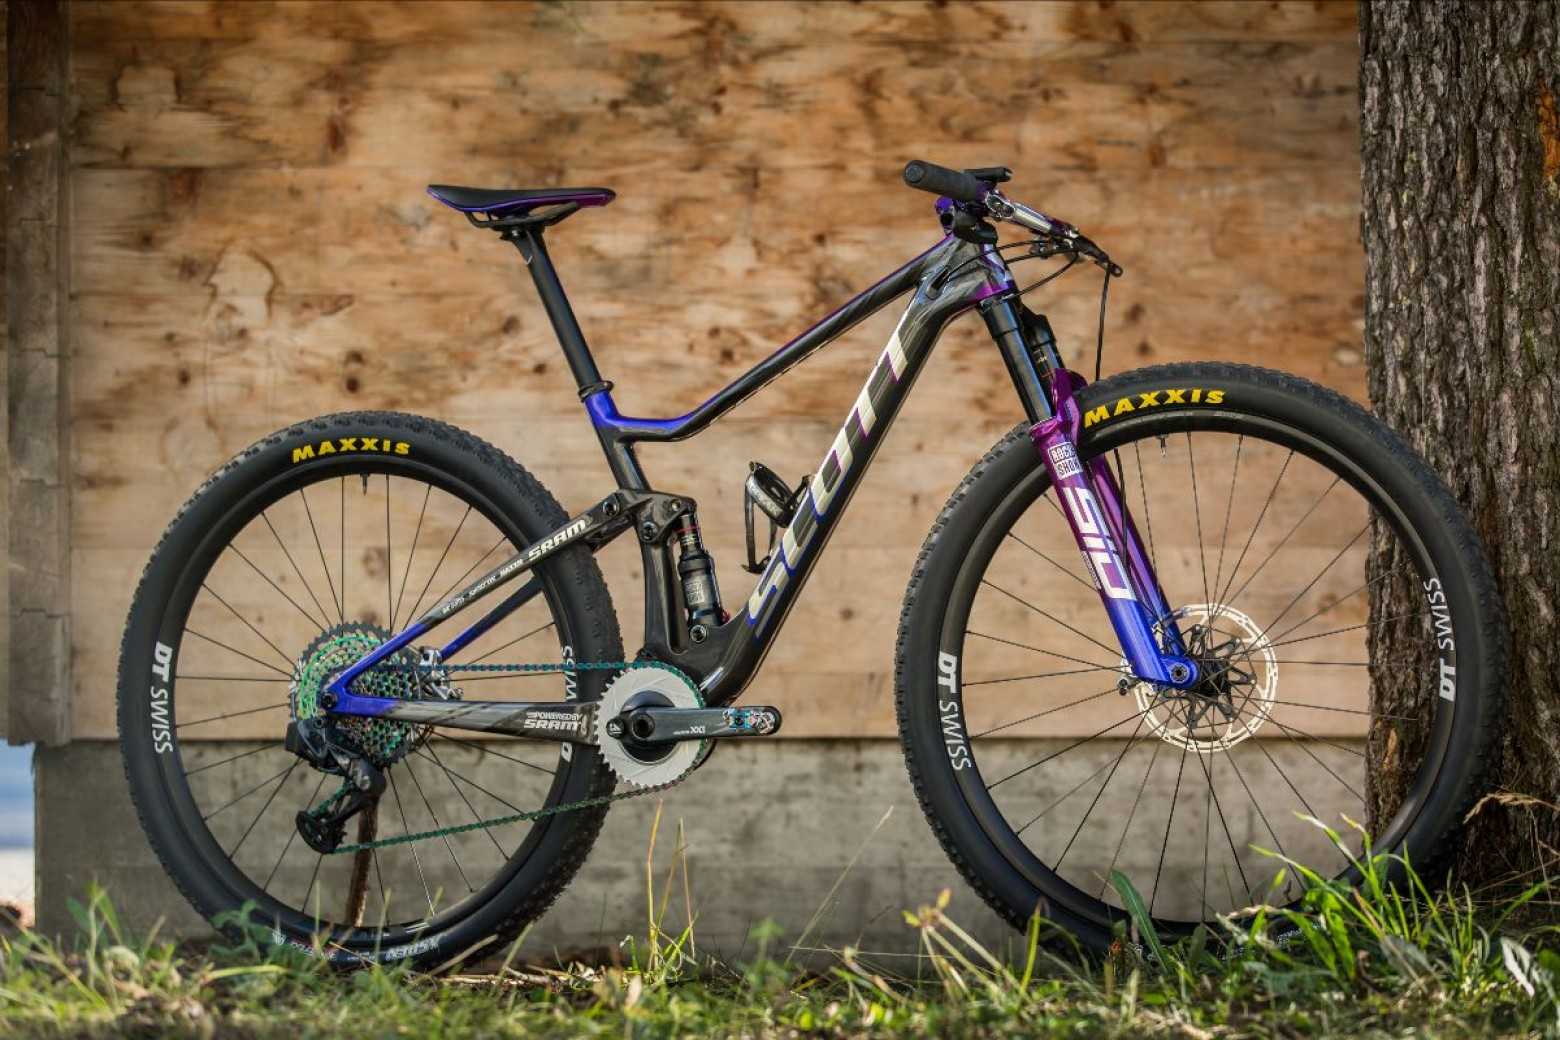 In detail and in exclusive the Scott Spark Supersonic of